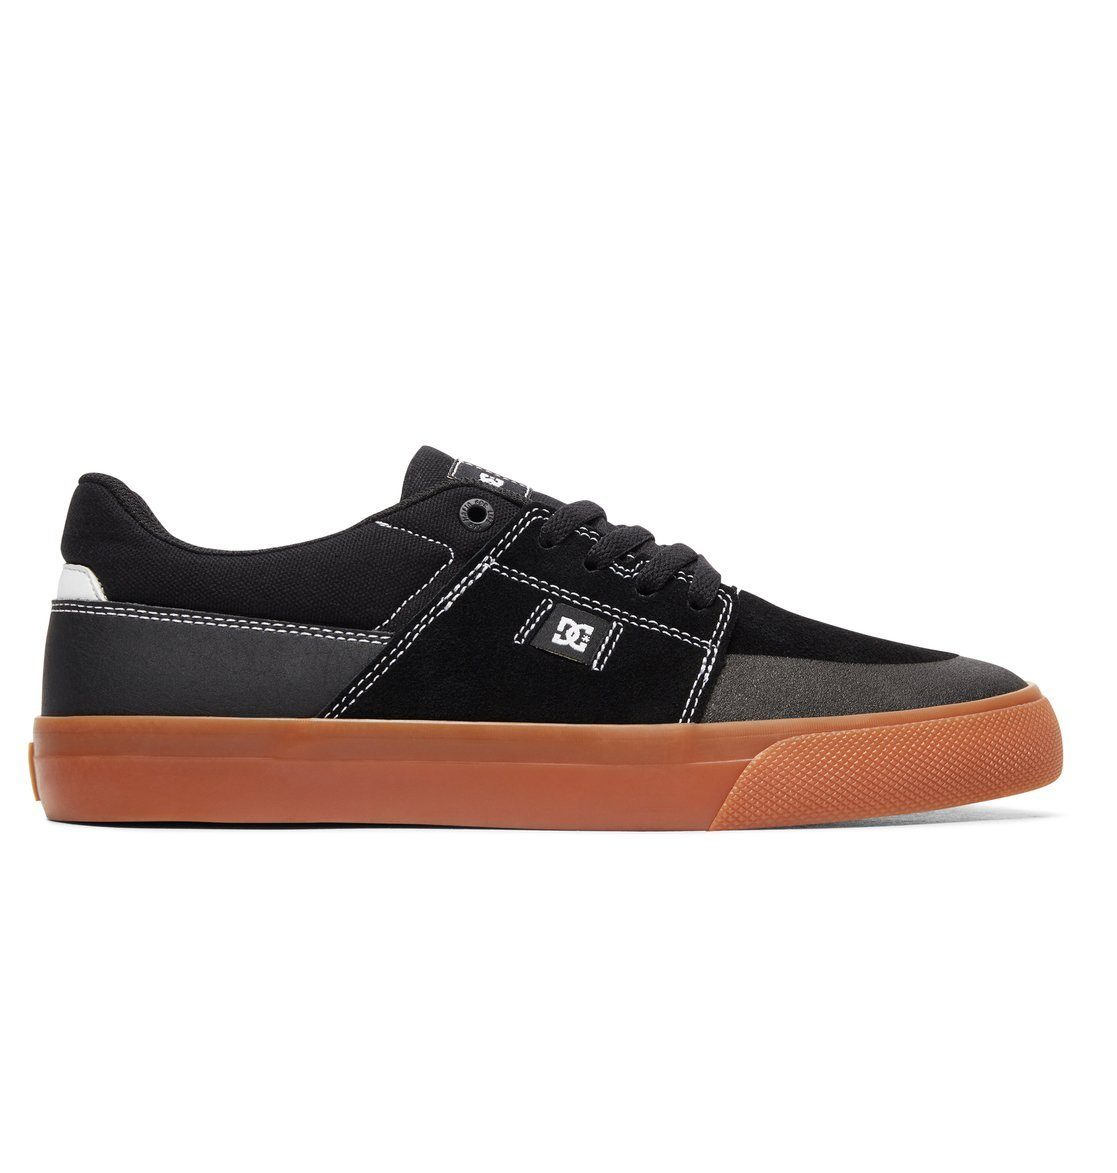 DC Shoes Schuhe Wes Kremer online kaufen  Black#ft5_slash#gum